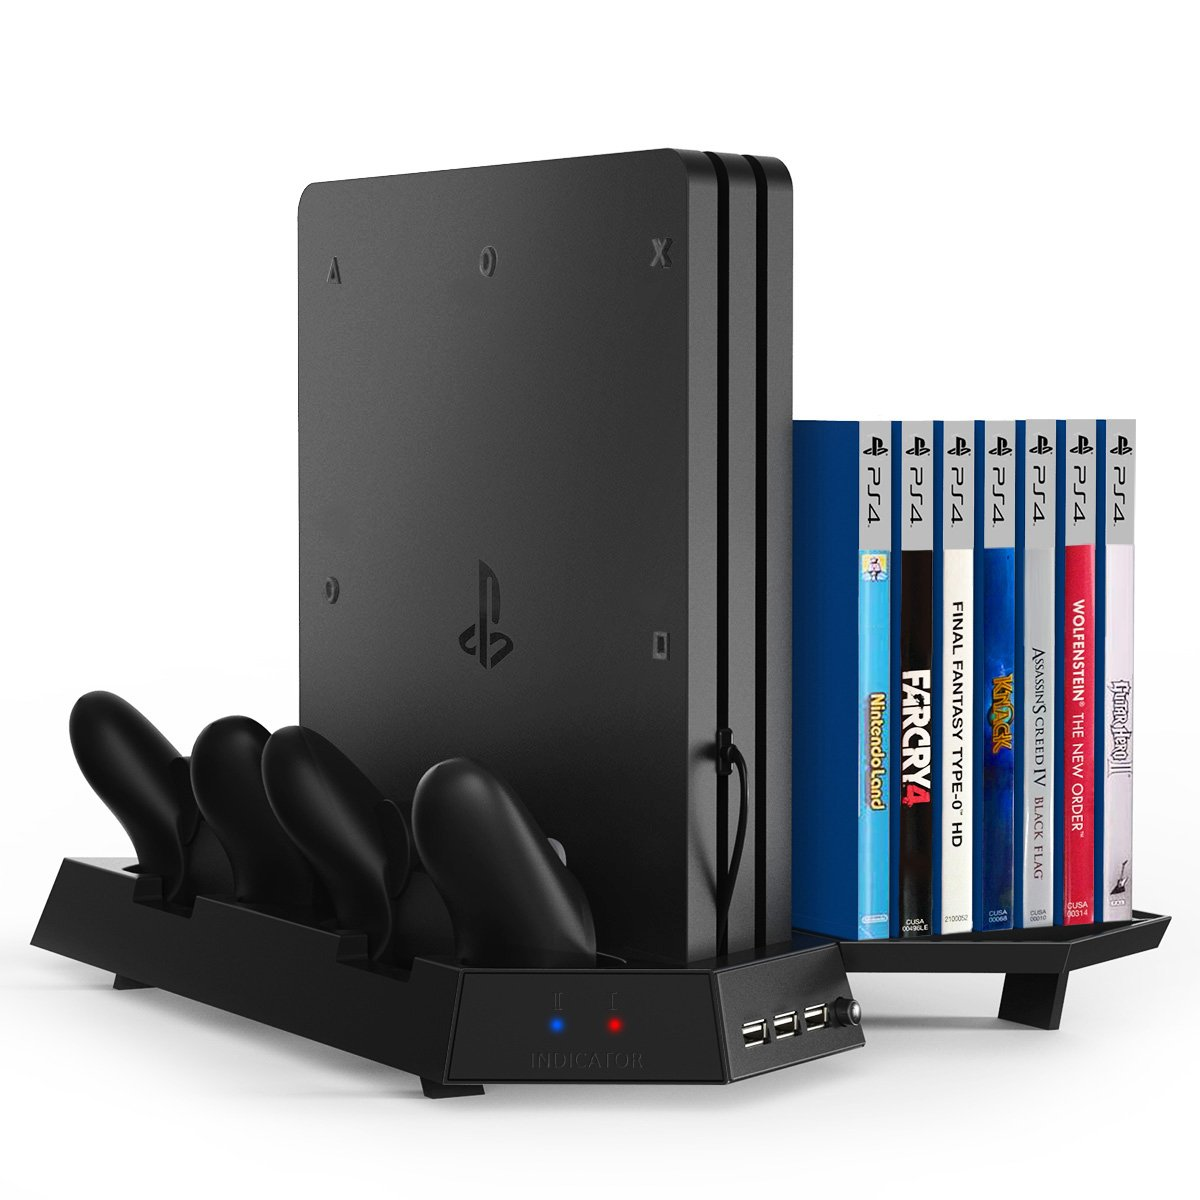 Kootek Vertical Stand for PS4 Pro with Game Storage and Cooling Fan Dual Controller Charger Station for Sony Playstation 4 Pro Dualshock 4 Controller (Not for Slim/Regular PS4) by Kootek